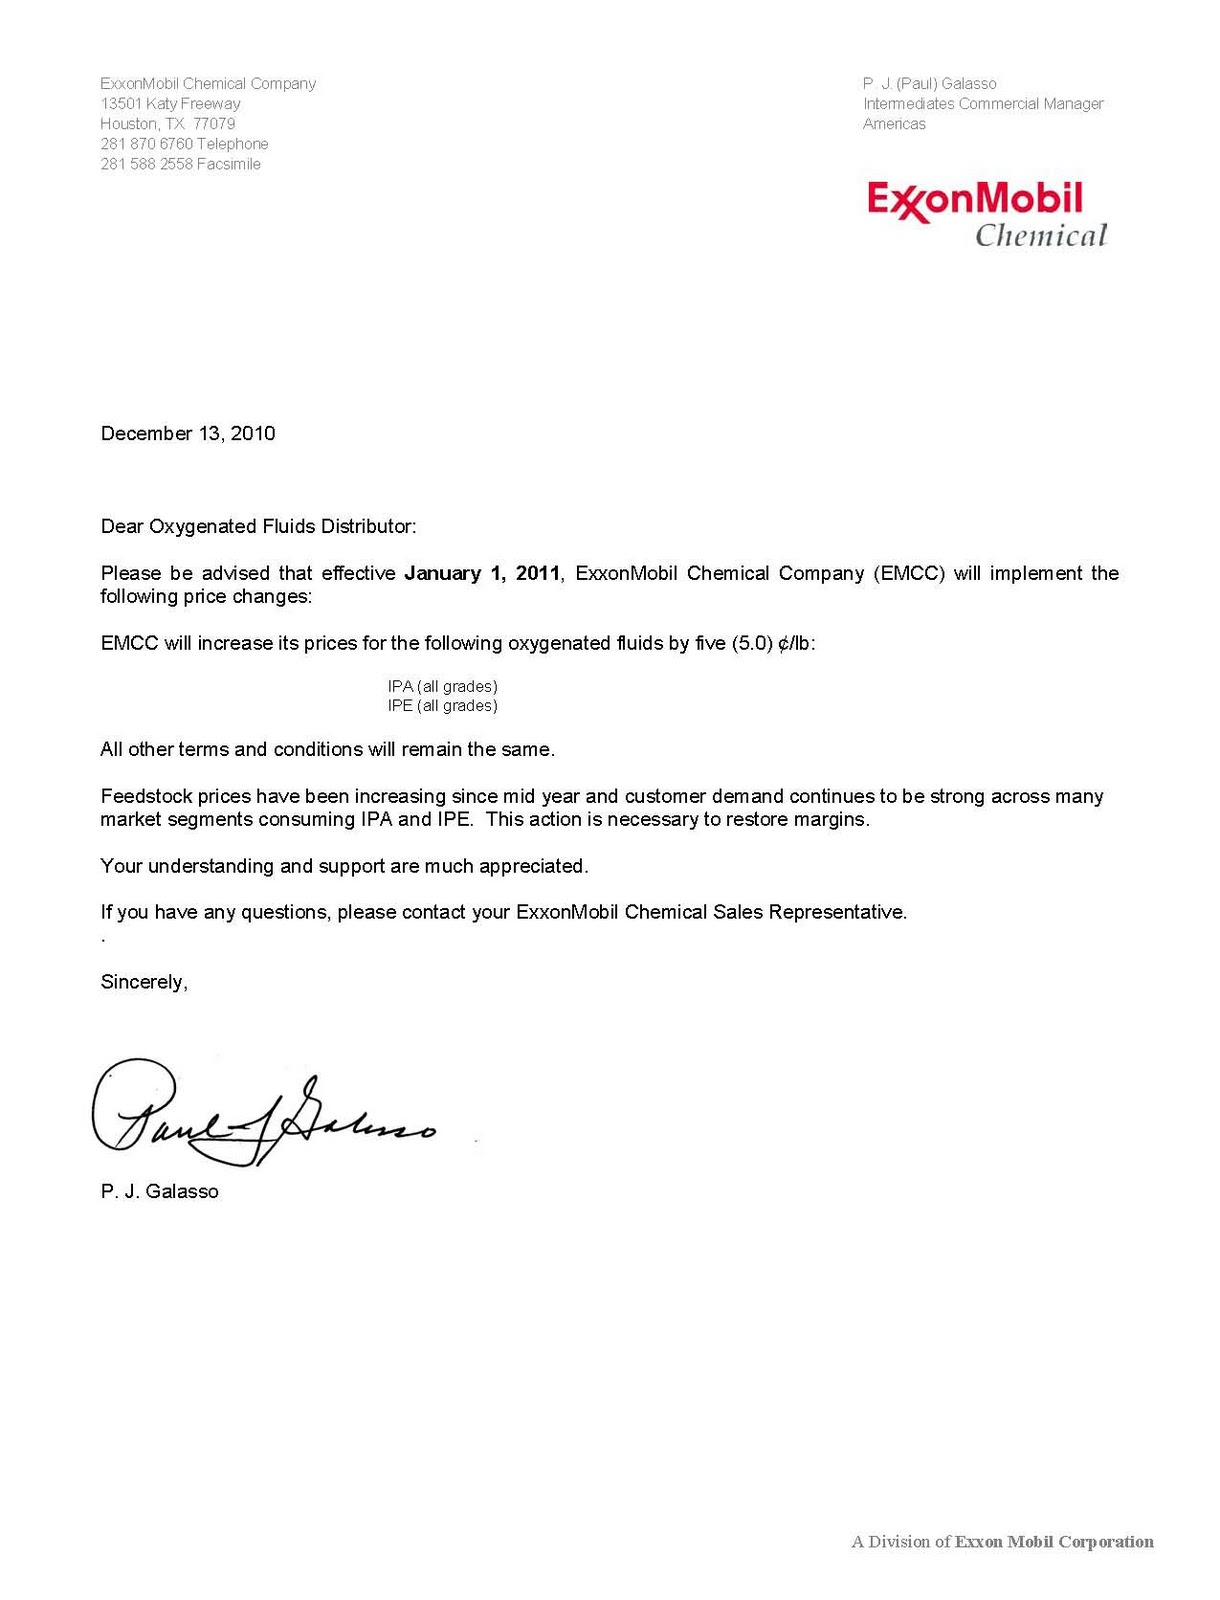 Day Care Rate Increase Letter Sample - Letter BestPoemView CO